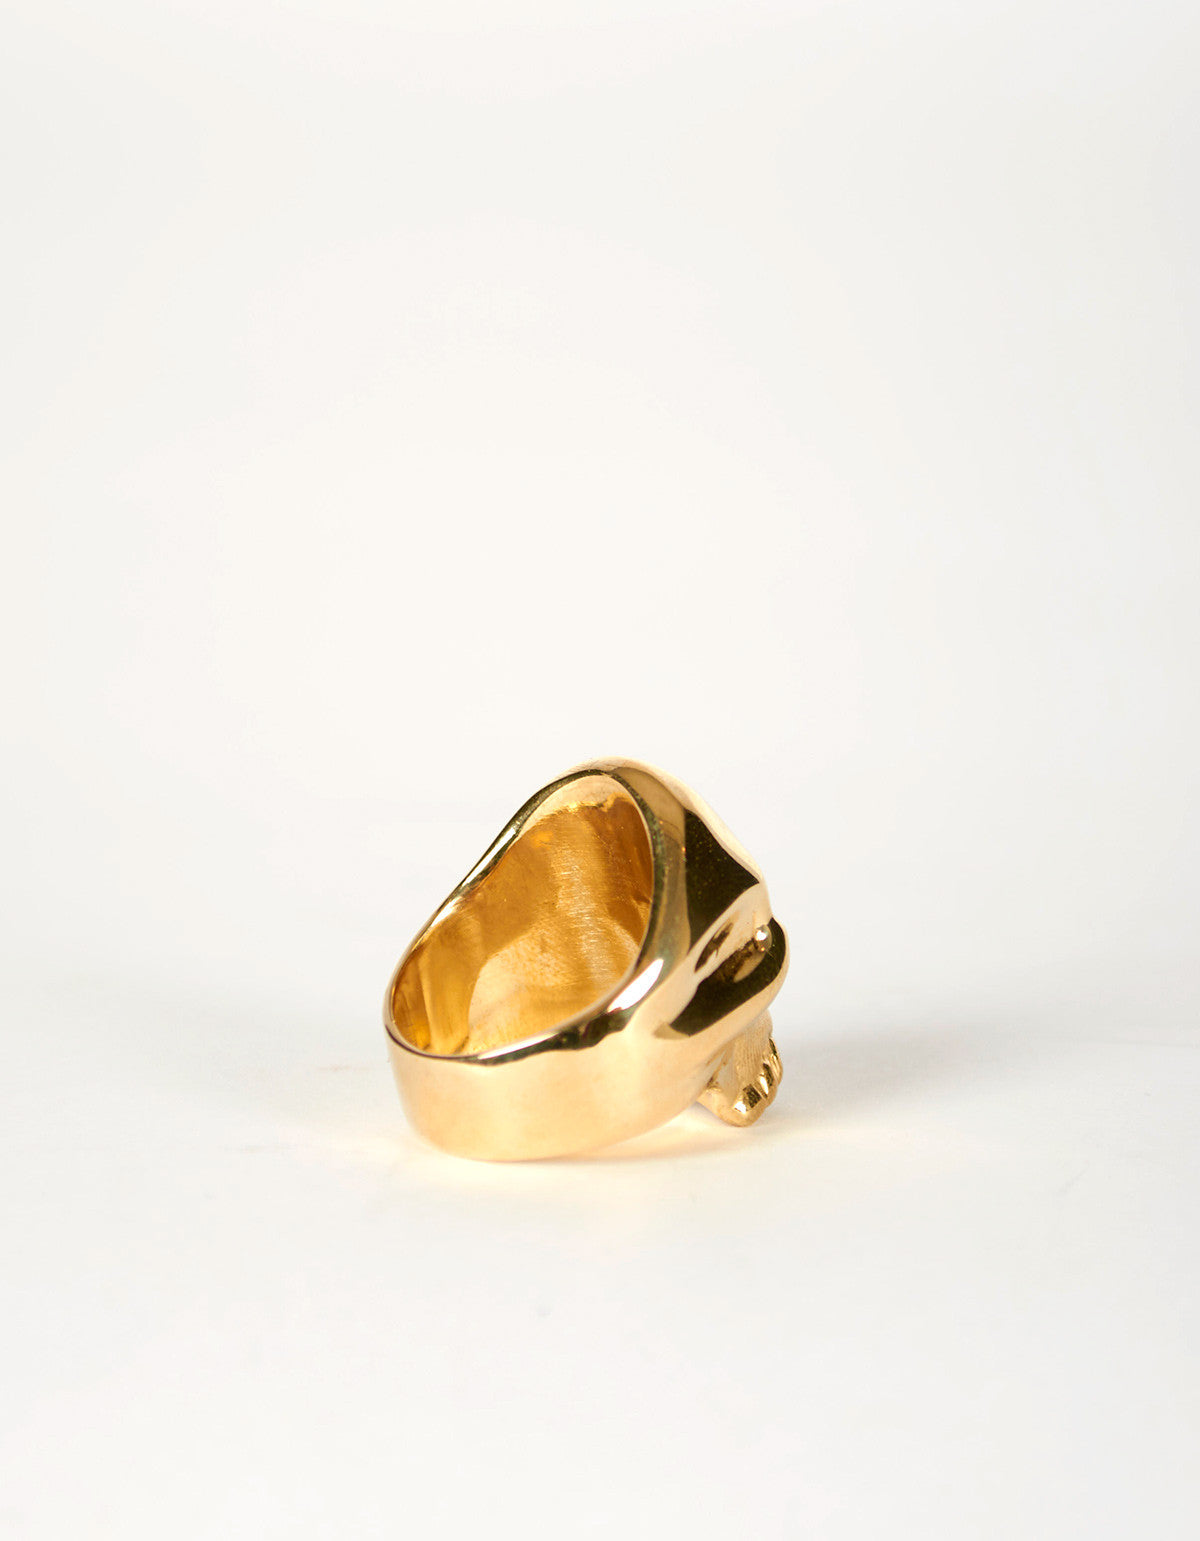 Jon Swinamer Skull Ring Bronze - Still Life - 3